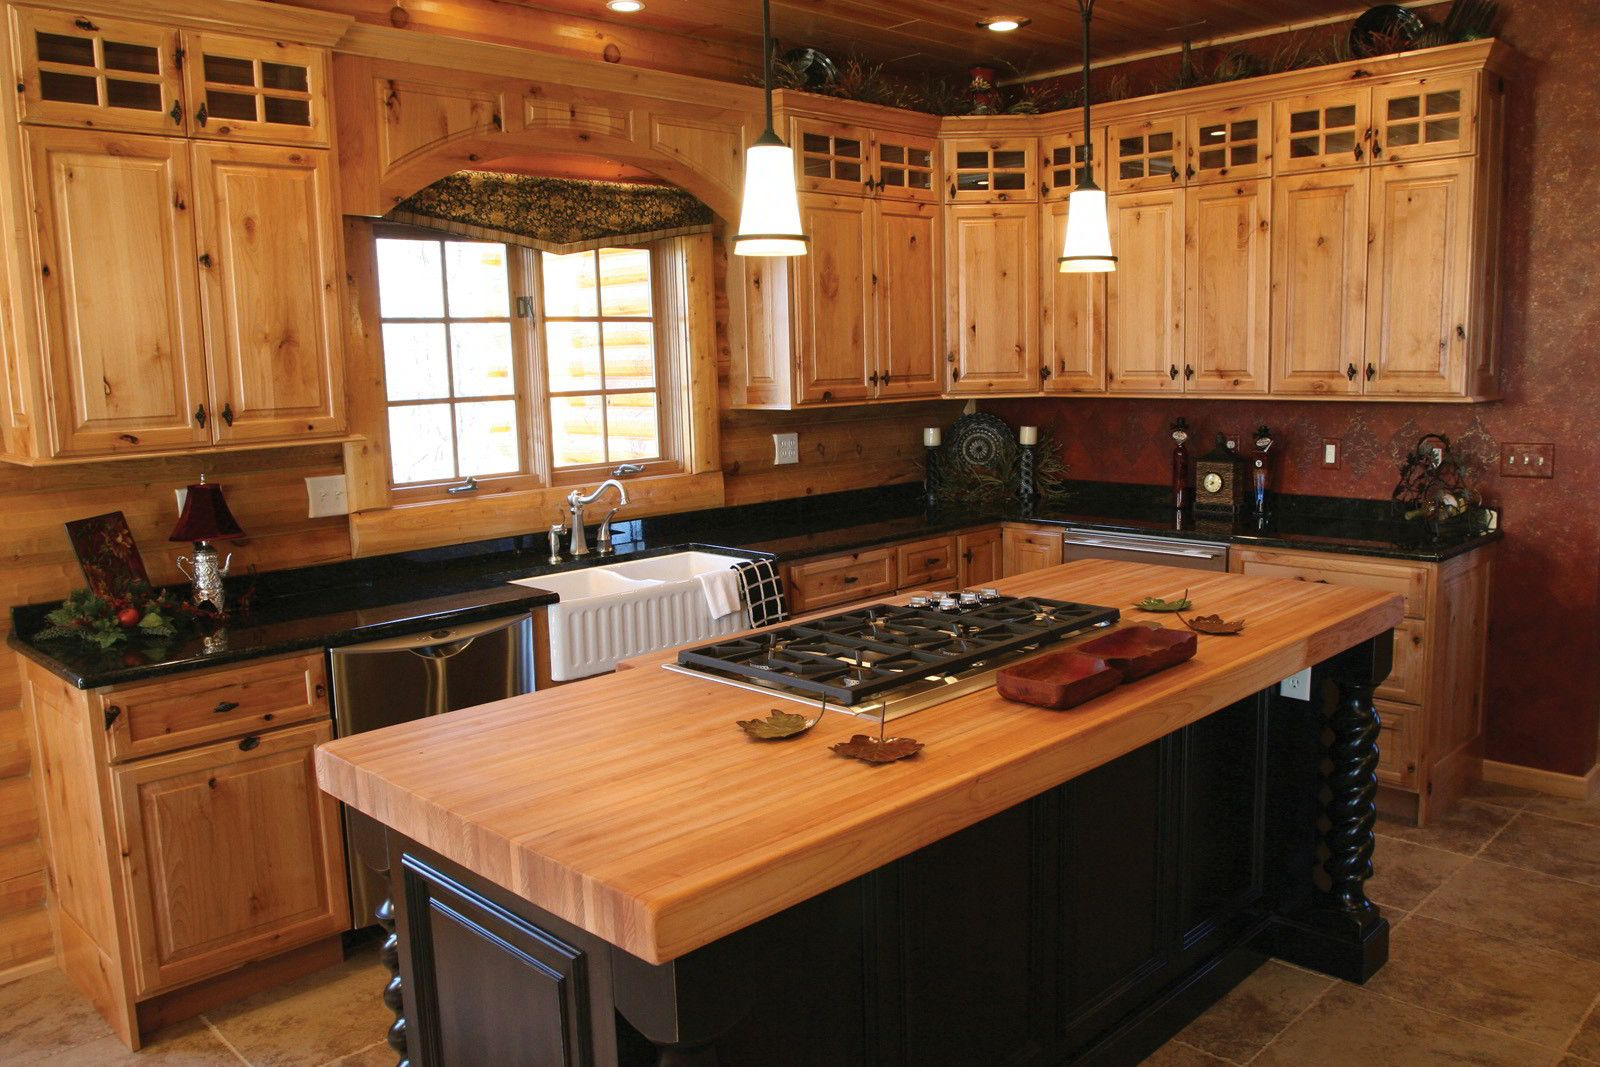 Kitchen Kitchen And Also Awesome Rustic Kitchen Cabinets For Your Home And With Images Rustic Kitchen Cabinets Pine Kitchen Cabinets Hickory Kitchen Cabinets